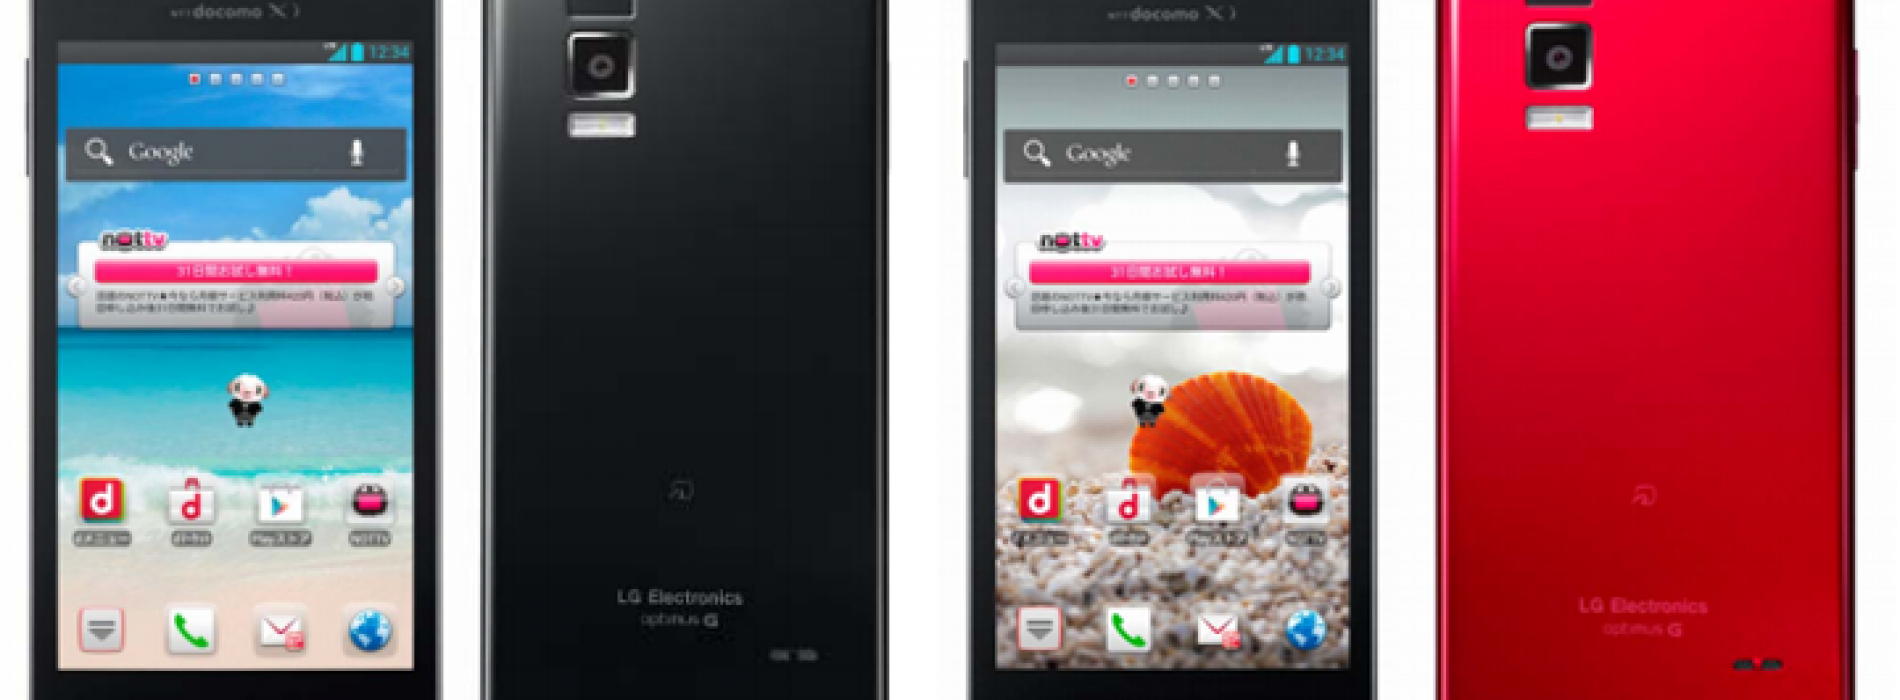 LG Optimus G Nexus reported to arrive in November with Android 4.2